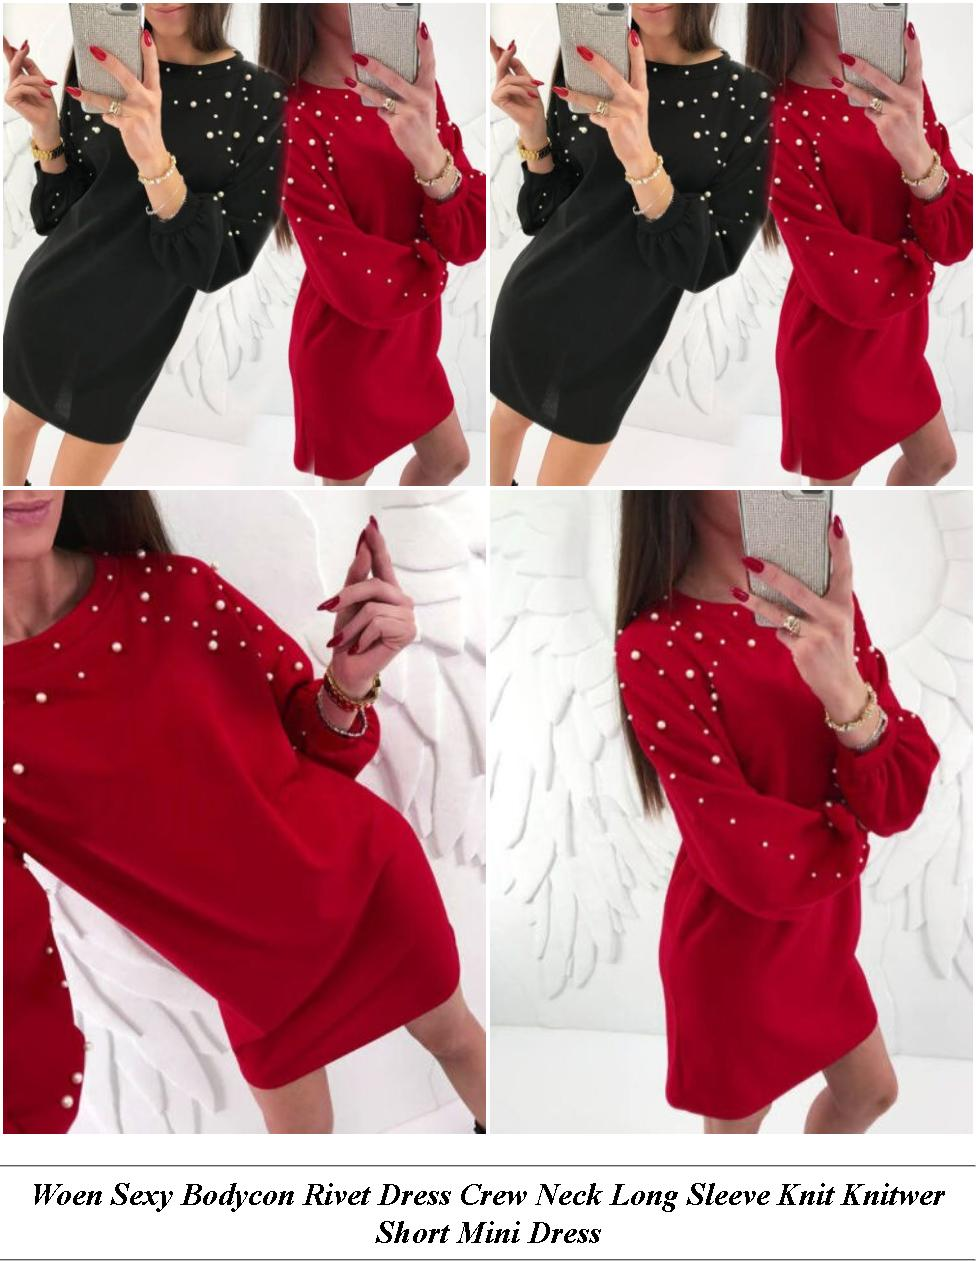 Shift Dress Uk Size - Old Uk Clothing Rands - Plus Size Cocktail Dresses Montreal